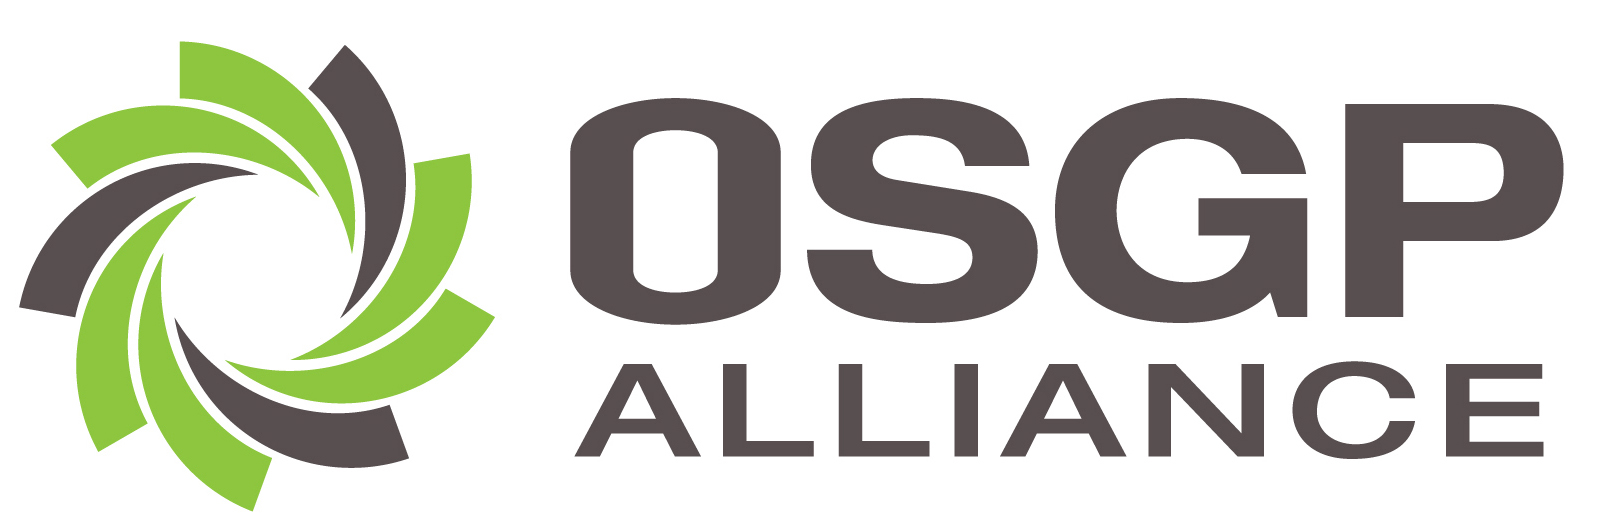 OSGP Alliance | MEE | middle east energy